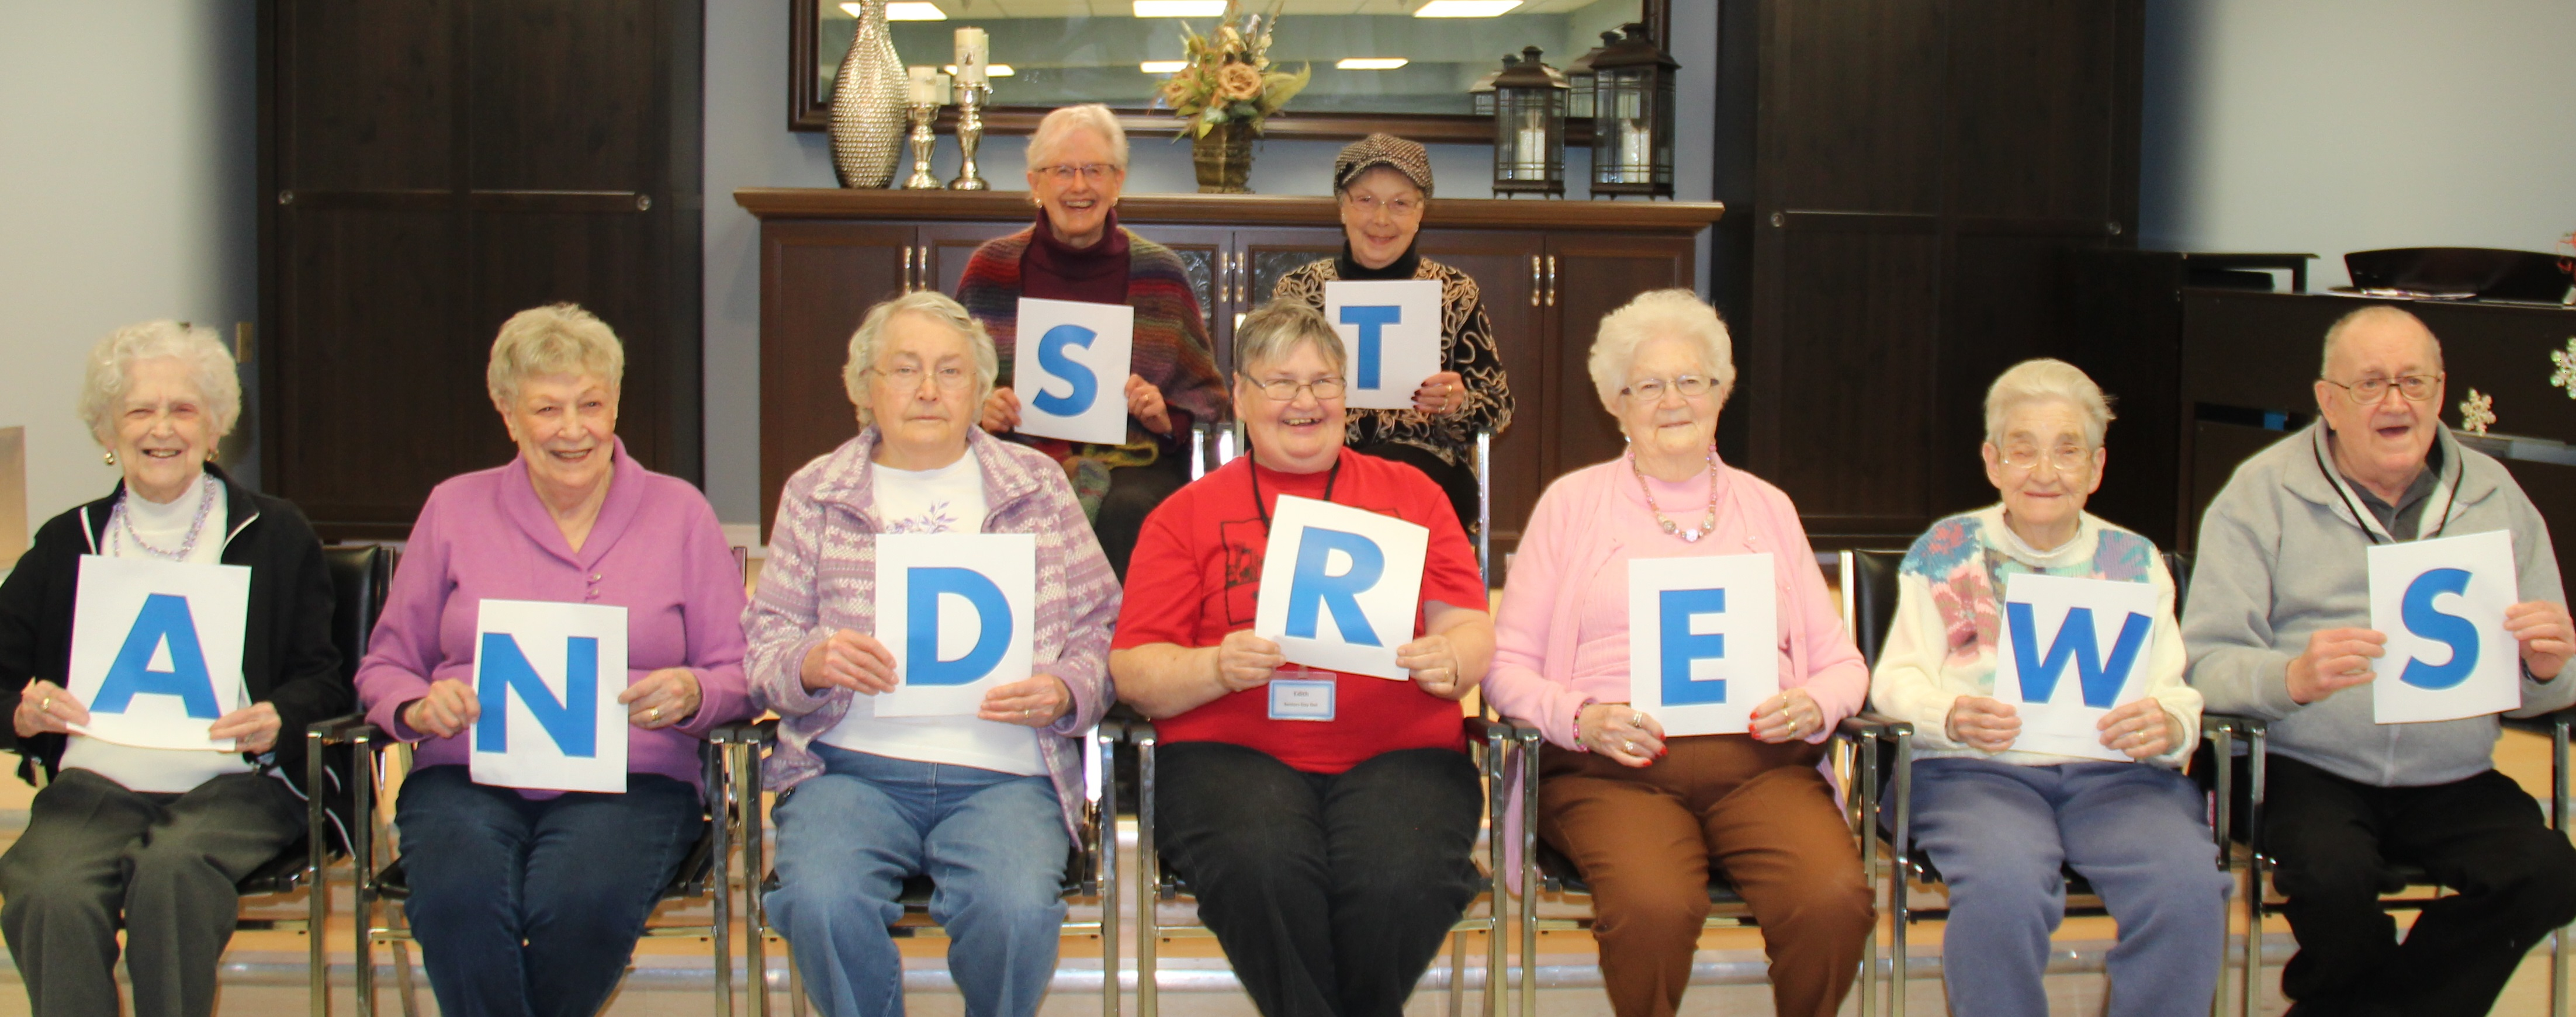 Picture of Residents spelling St. Andrew's